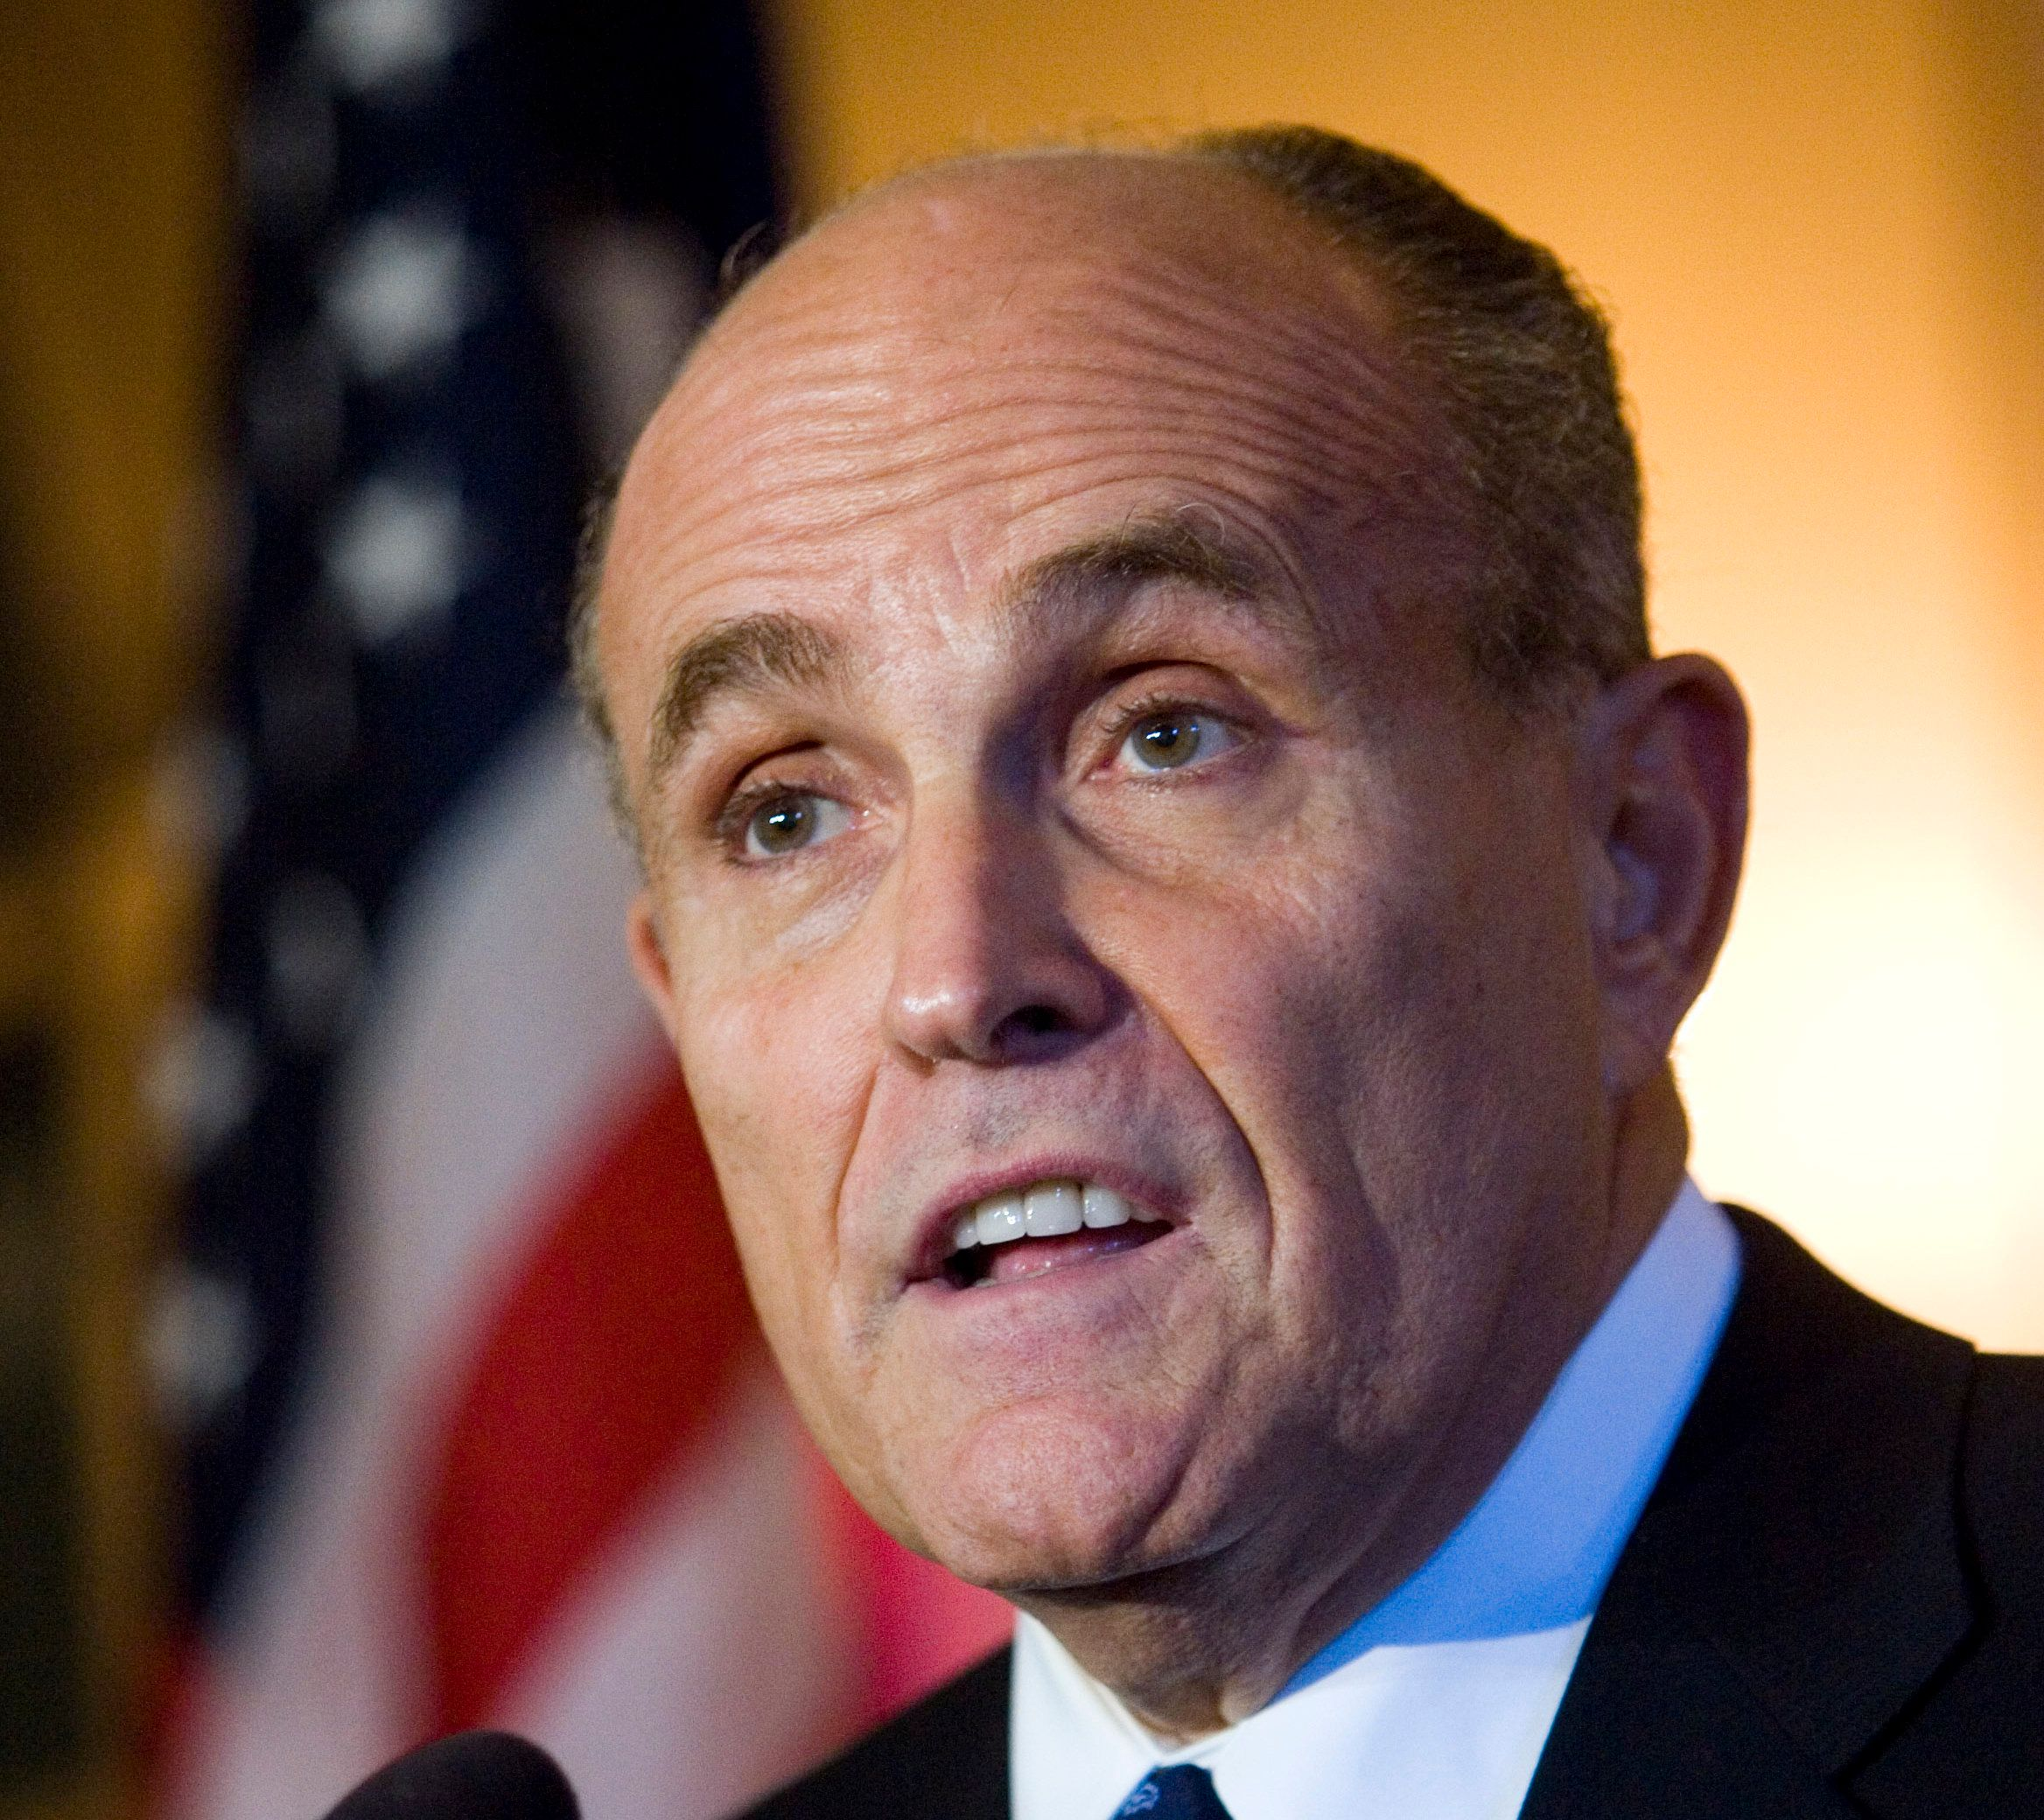 "FILE - In this Oct. 18, 2007 file photo, Rudy Giuliani answers questions following a fundraiser in Milwaukee. Giuliani is giving Hillary Clinton credit for her work on behalf of victims of the Sept. 11, 2001, terrorist attacks. Giuliani was asked at a Republican Party briefing Thursday, July 28, 2016, in Philadelphia whether he took issue with the Democratic convention speakers who'd been praising Clinton. Giuliani said she was ""enormously supportive and helpful."" Clinton was a U.S. senator from New York at the time. (AP Photo/Morry Gash, File)"